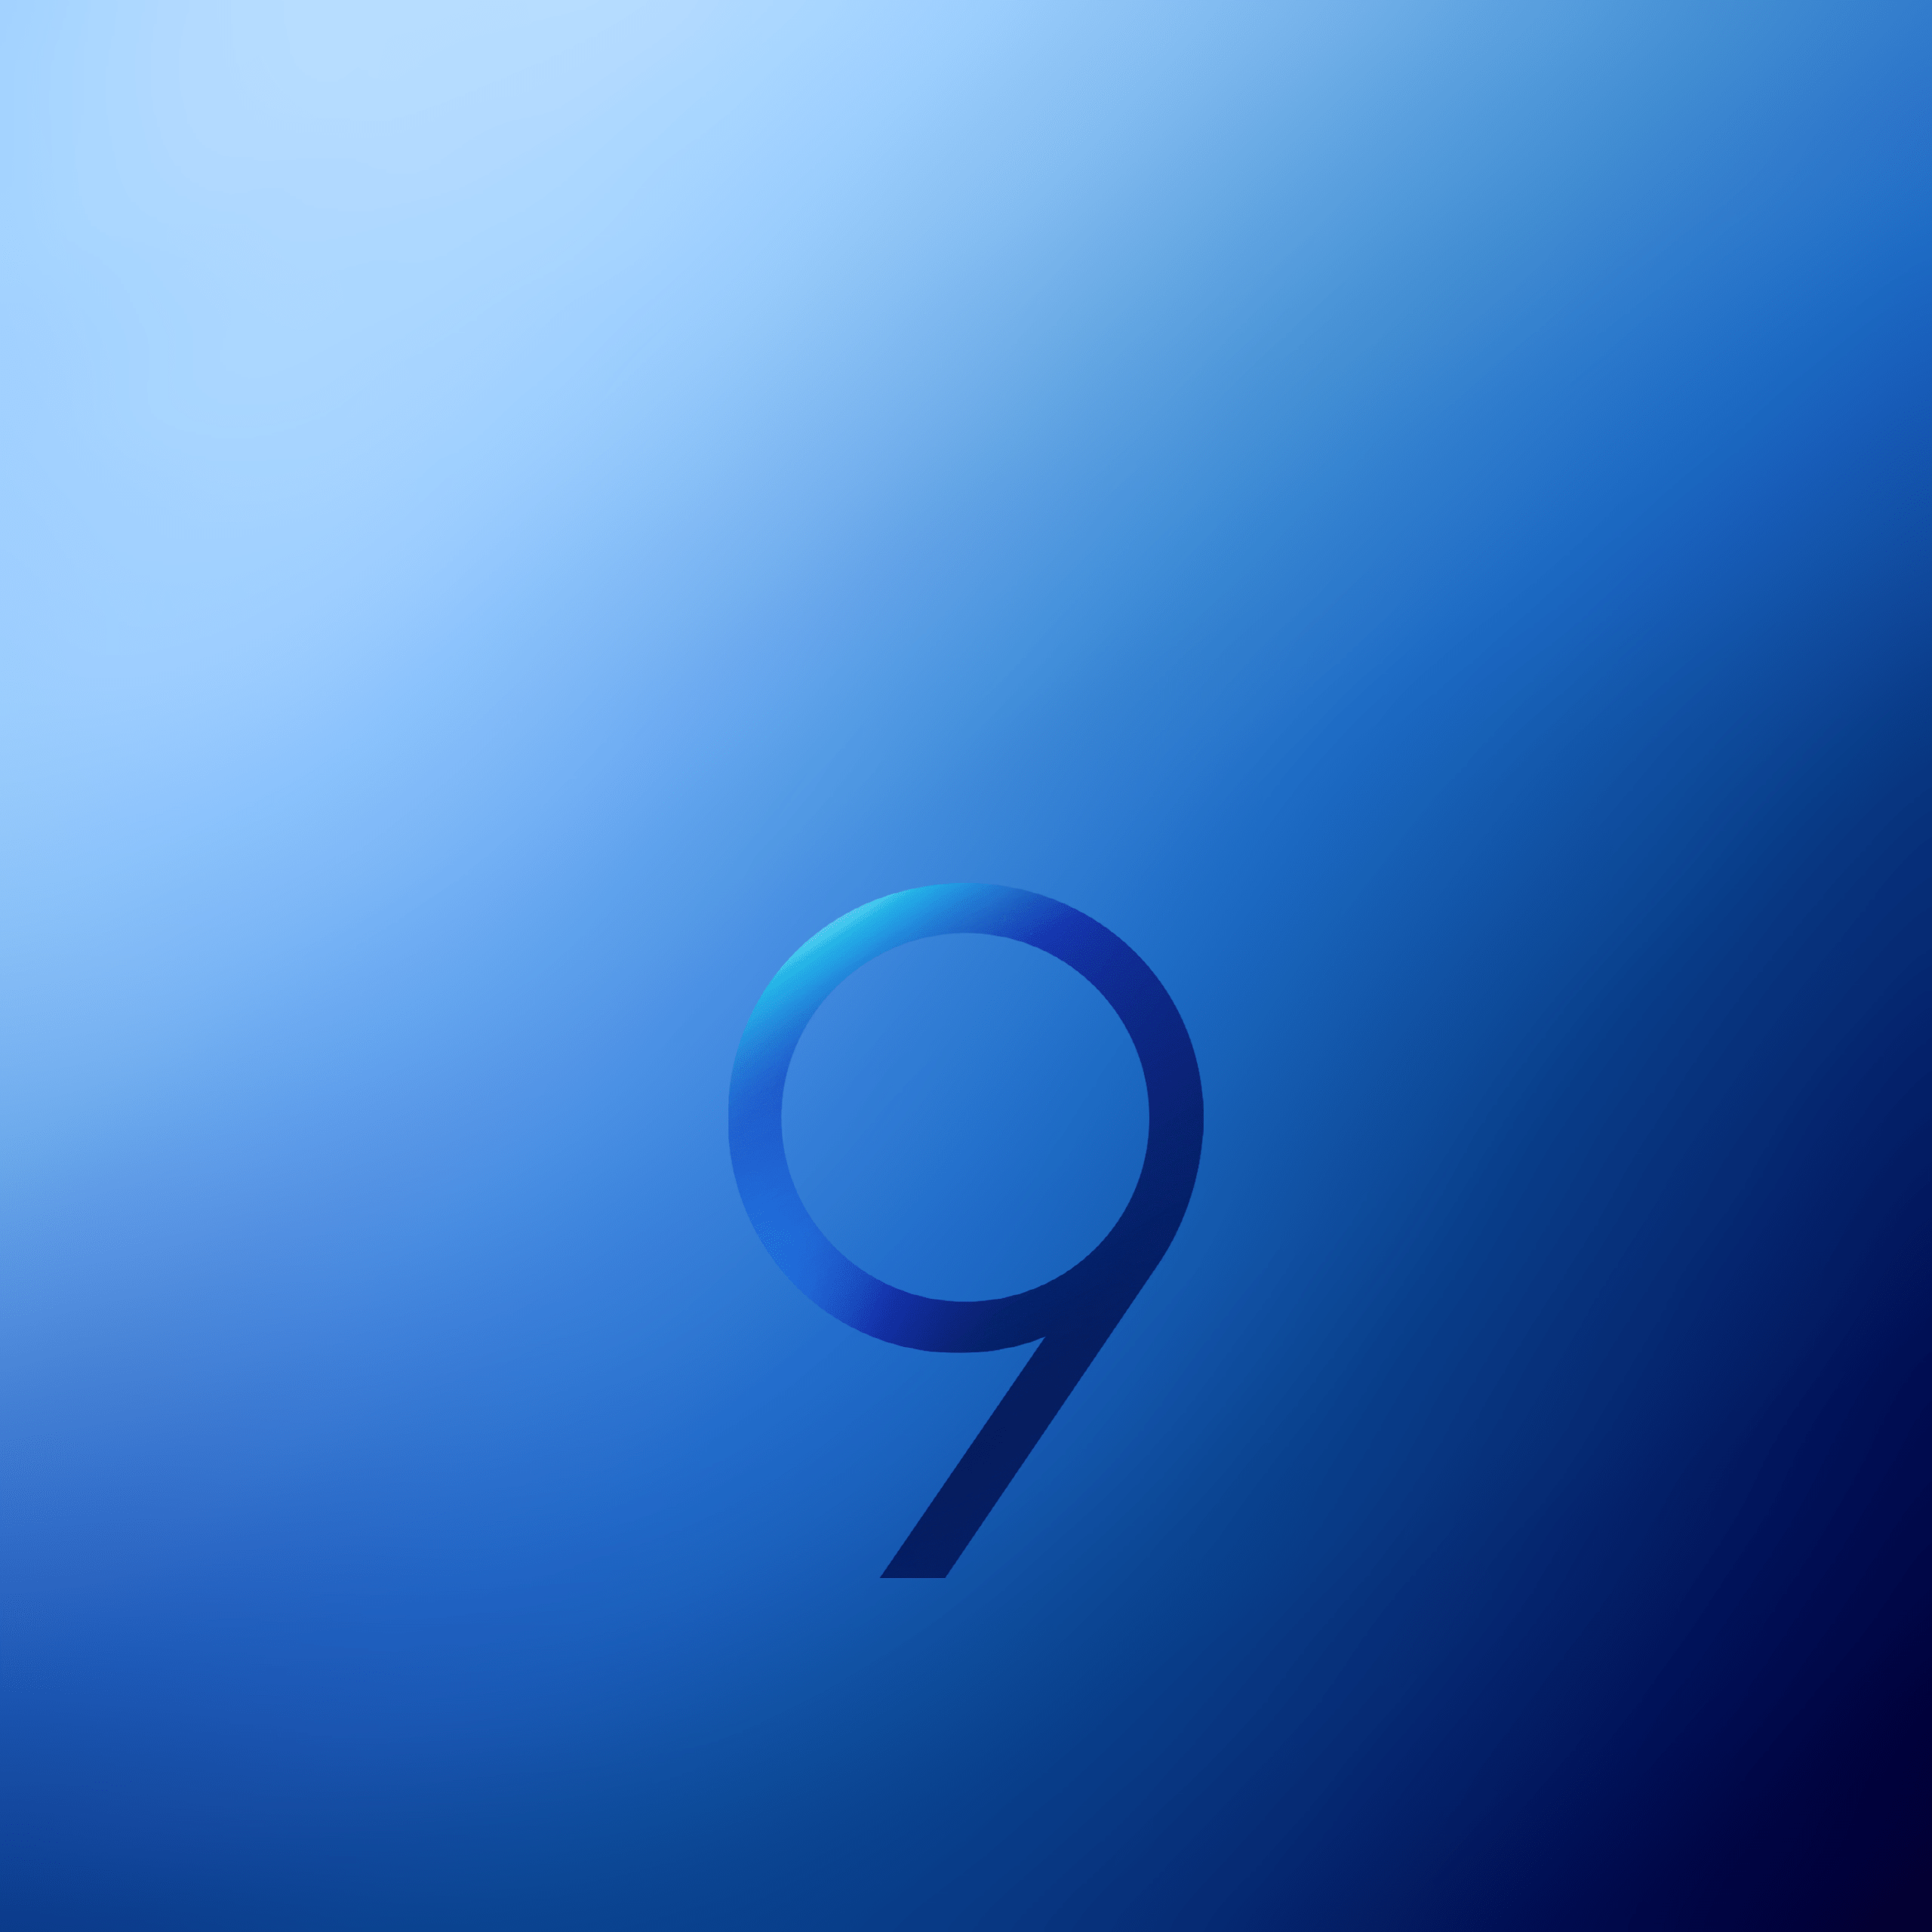 Here S All Of The Samsung Galaxy S9 Wallpapers In All Their Glory Deteched